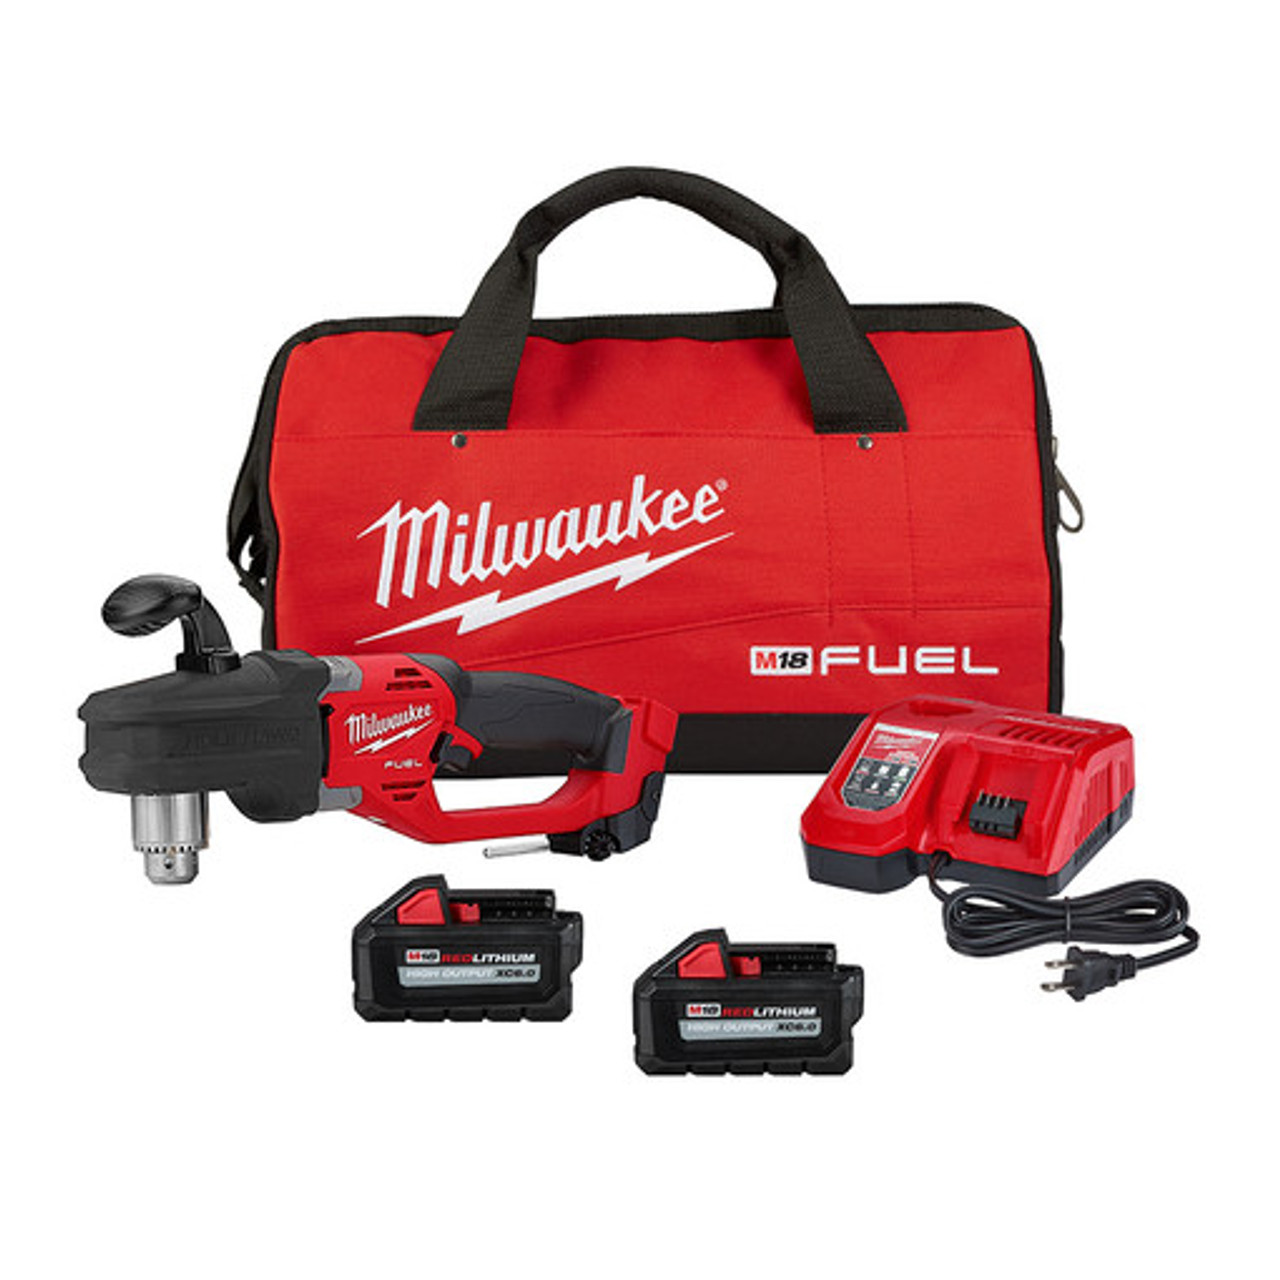 Milwaukee 2807-22 M18 FUEL HOLE HAWG 1/2 in. Right Angle Drill Kit